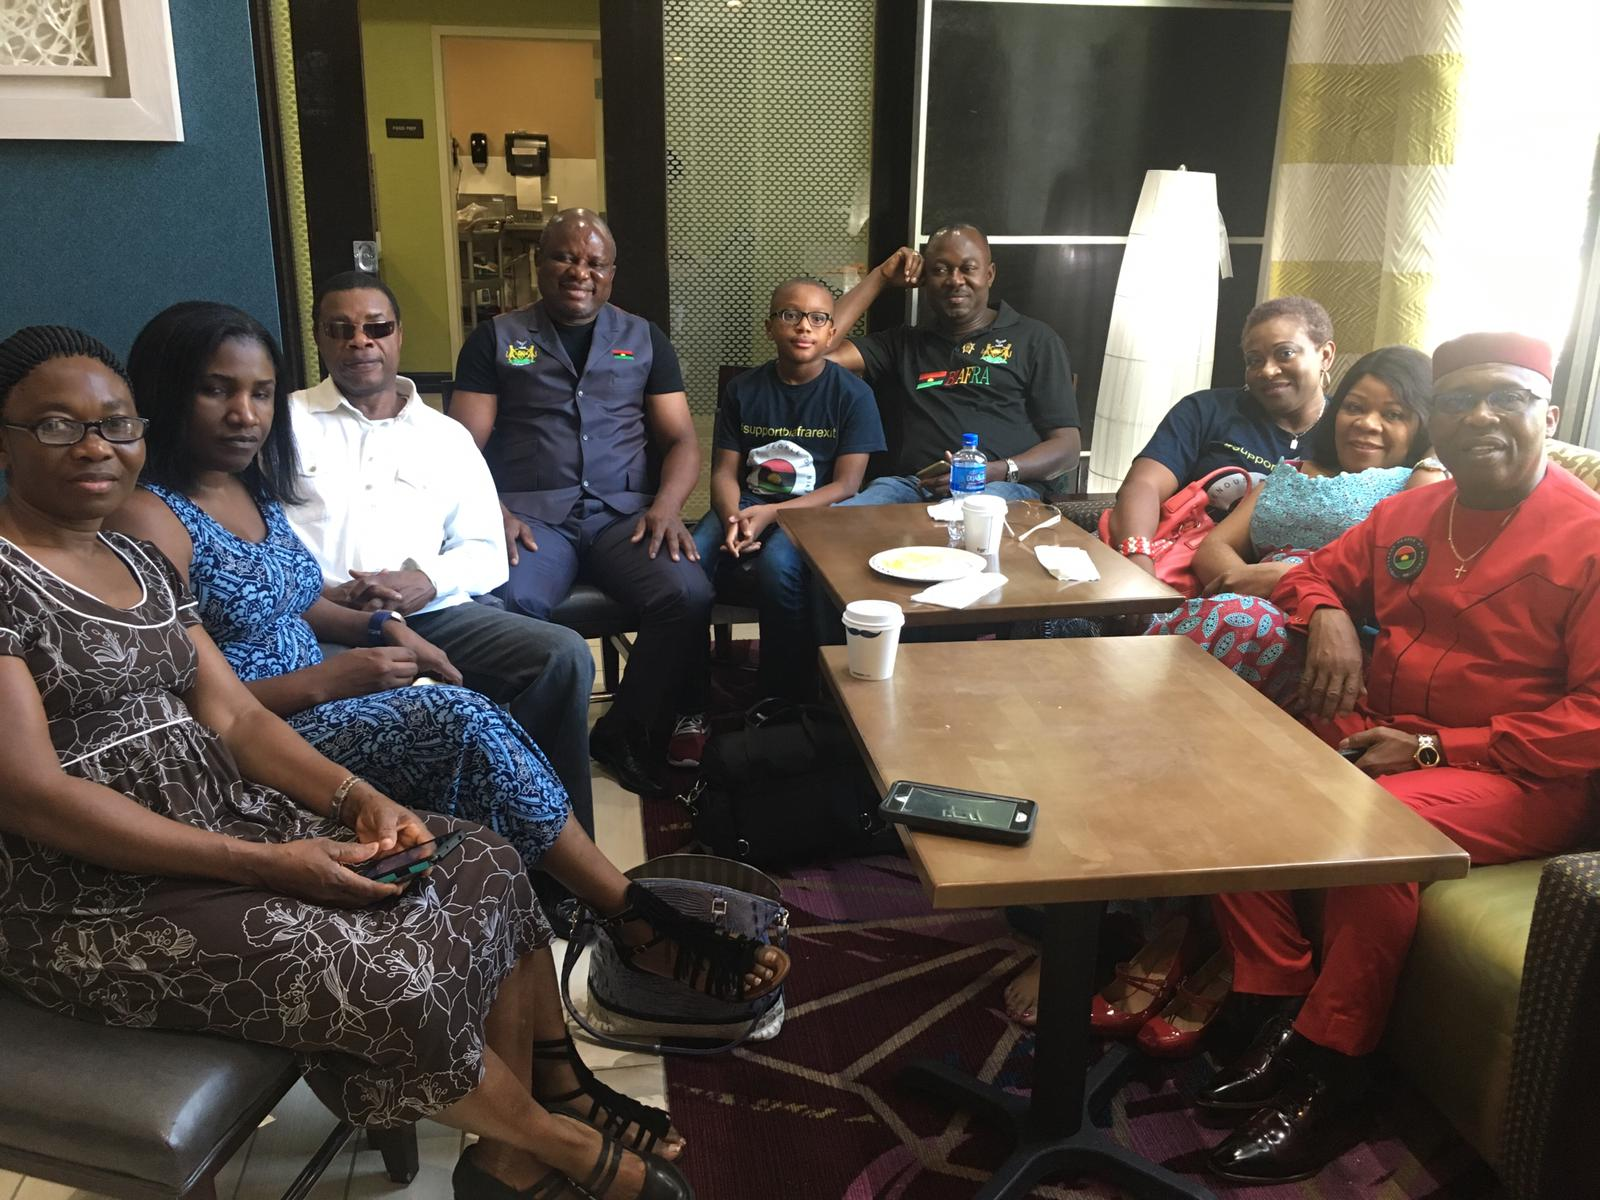 IPOB Houston Leadership conducts a brief meeting during Director Nnamdi Kanu's visit on June 22, 2019